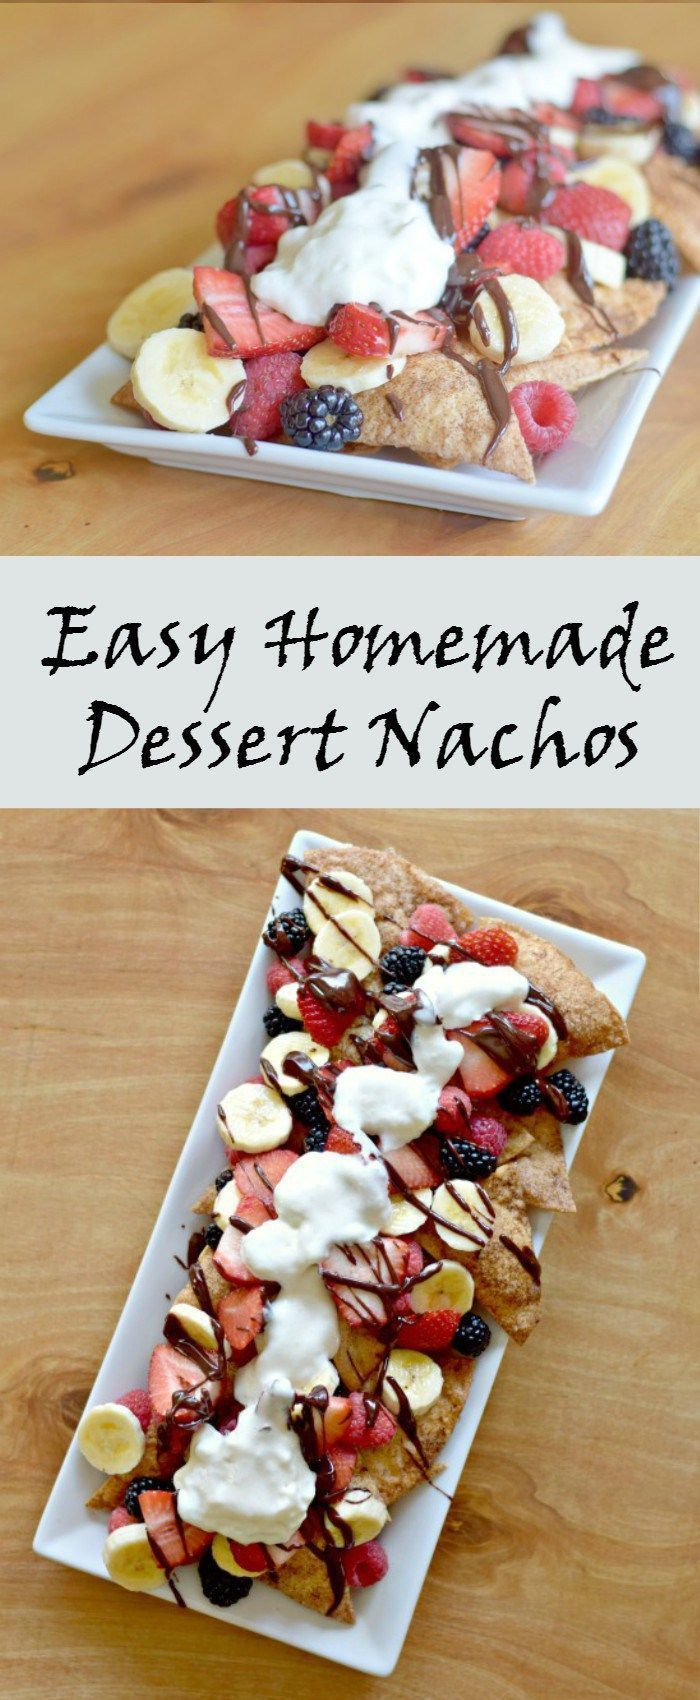 Easy homemade dessert nachos recipe with cinnamon sugar tortilla chips Mexican chocolate sauce, and fresh fruit for a lighter and delicious treat.